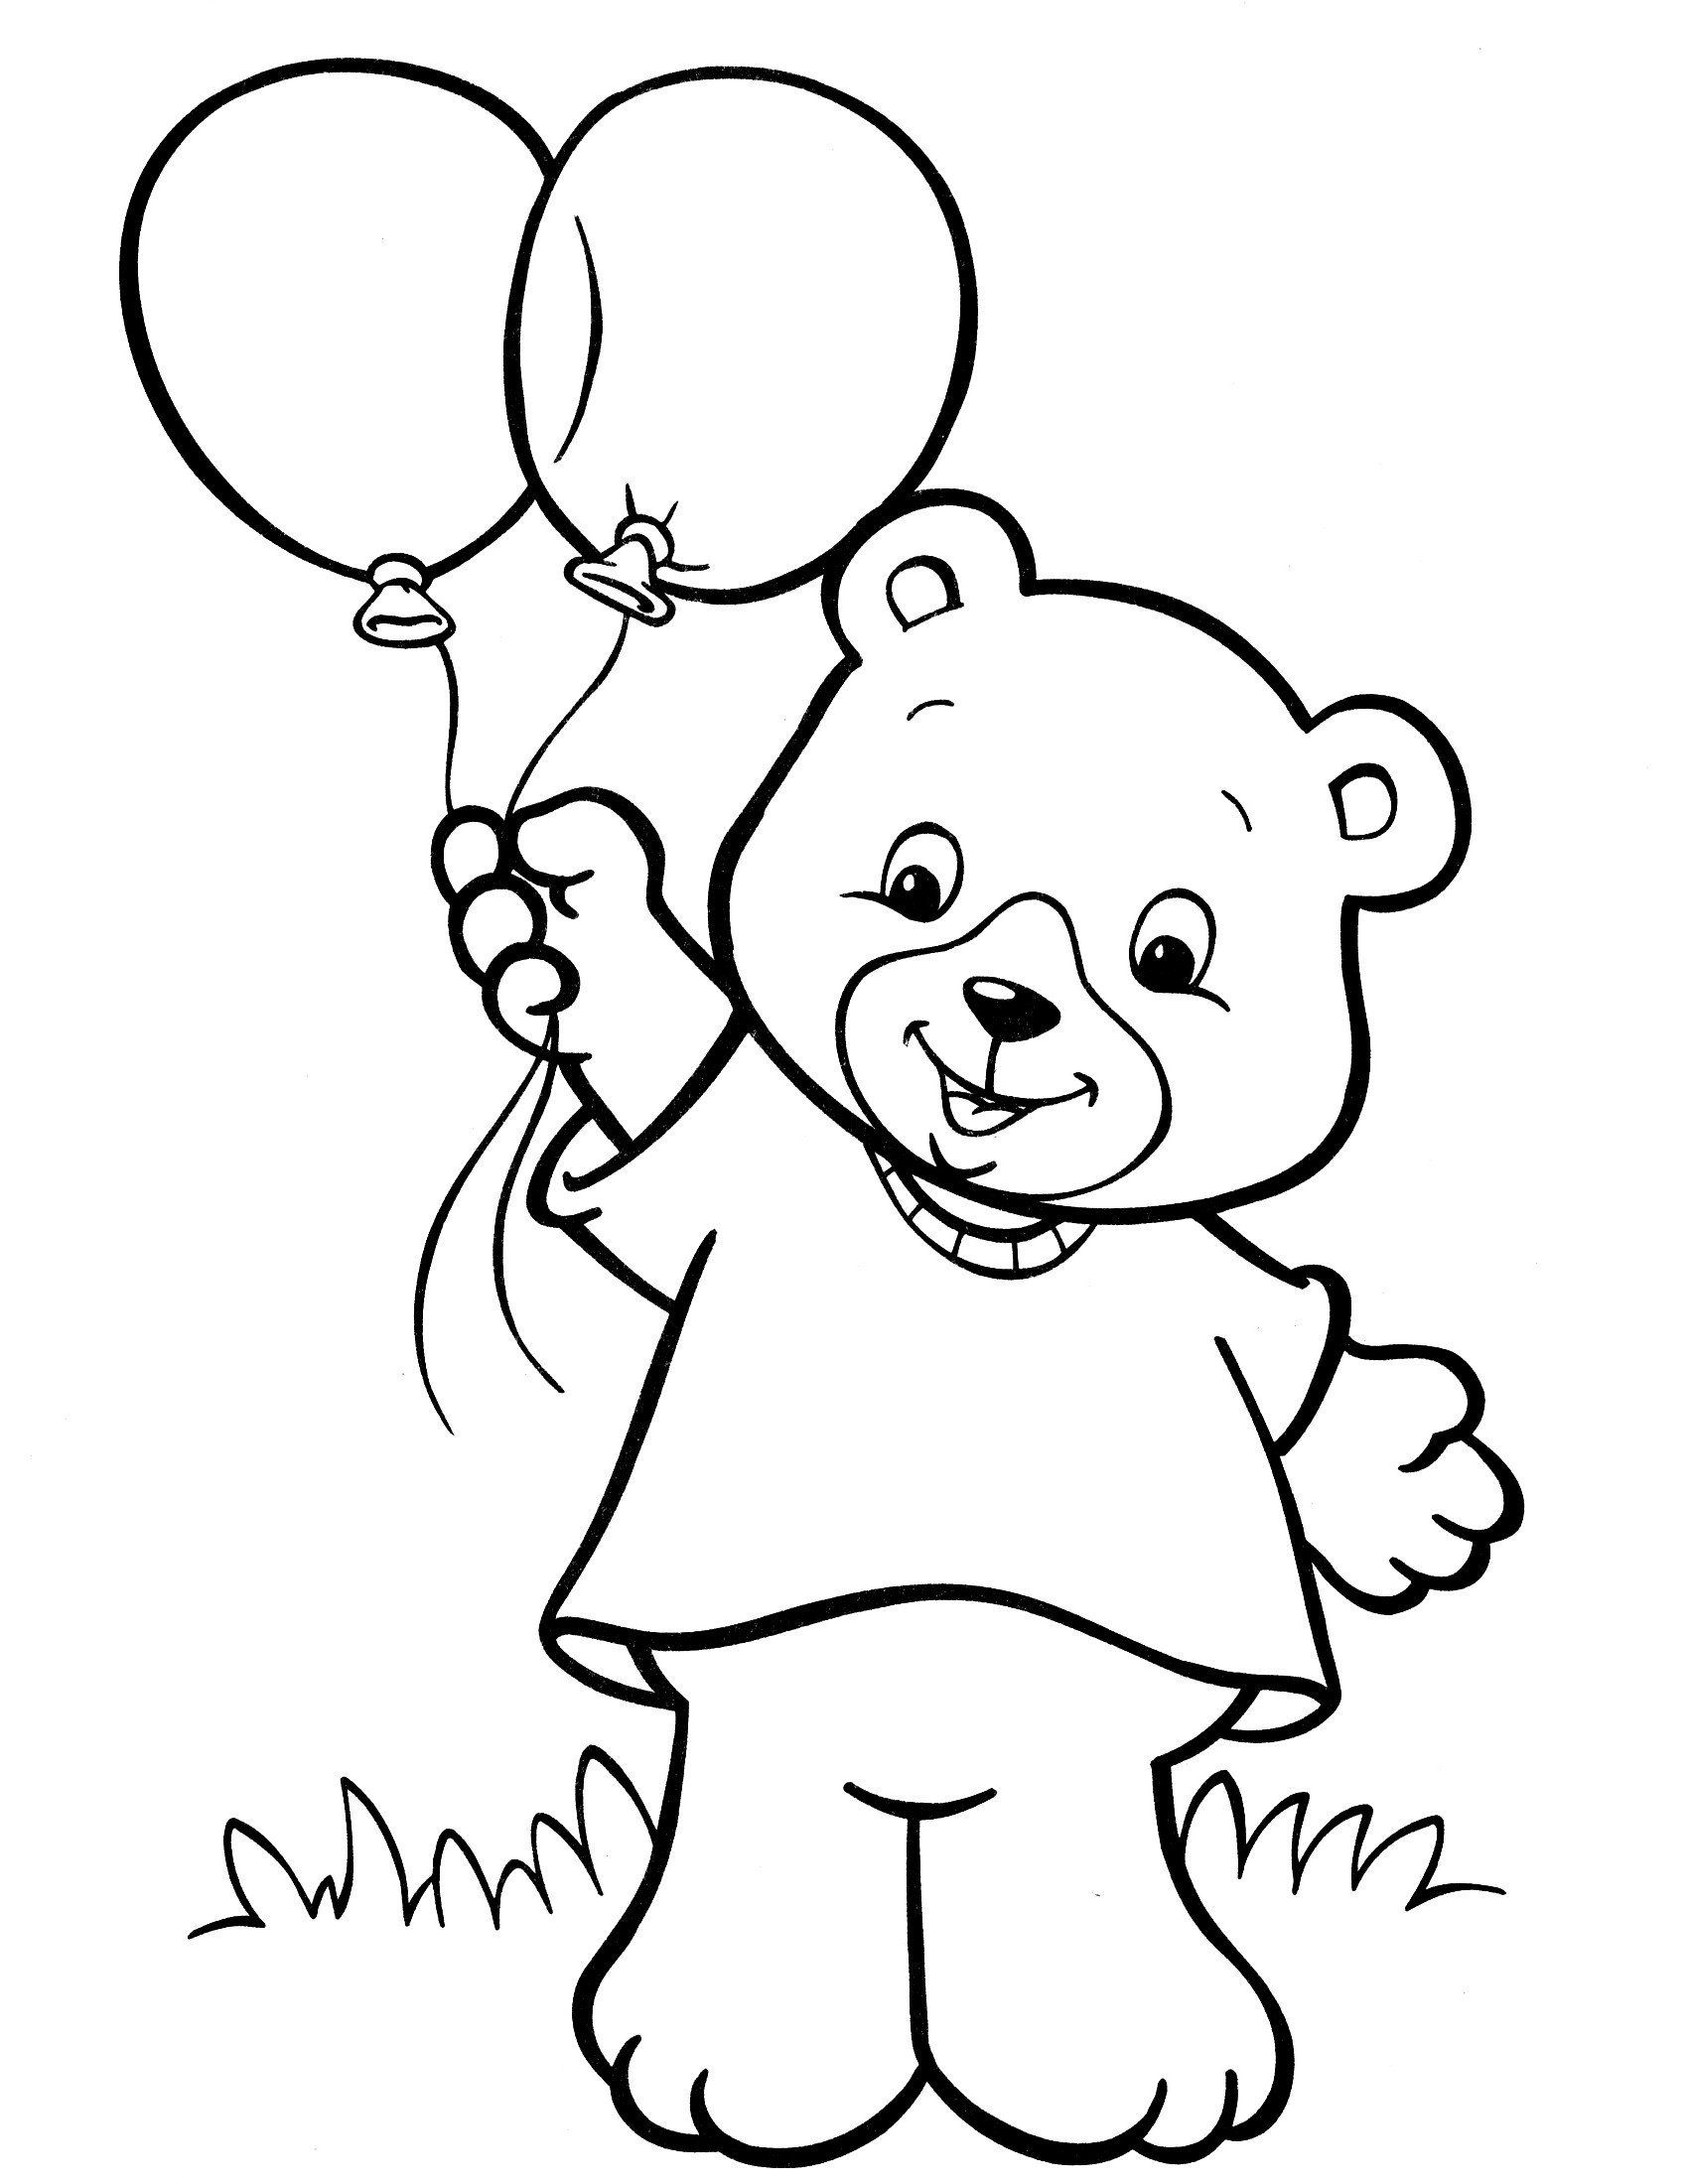 Coloring Books For 10 Year Olds Free Printable Coloring Pages For 2 Year Olds In 2020 Coloring Books Coloring Pages Coloring Pages For Boys